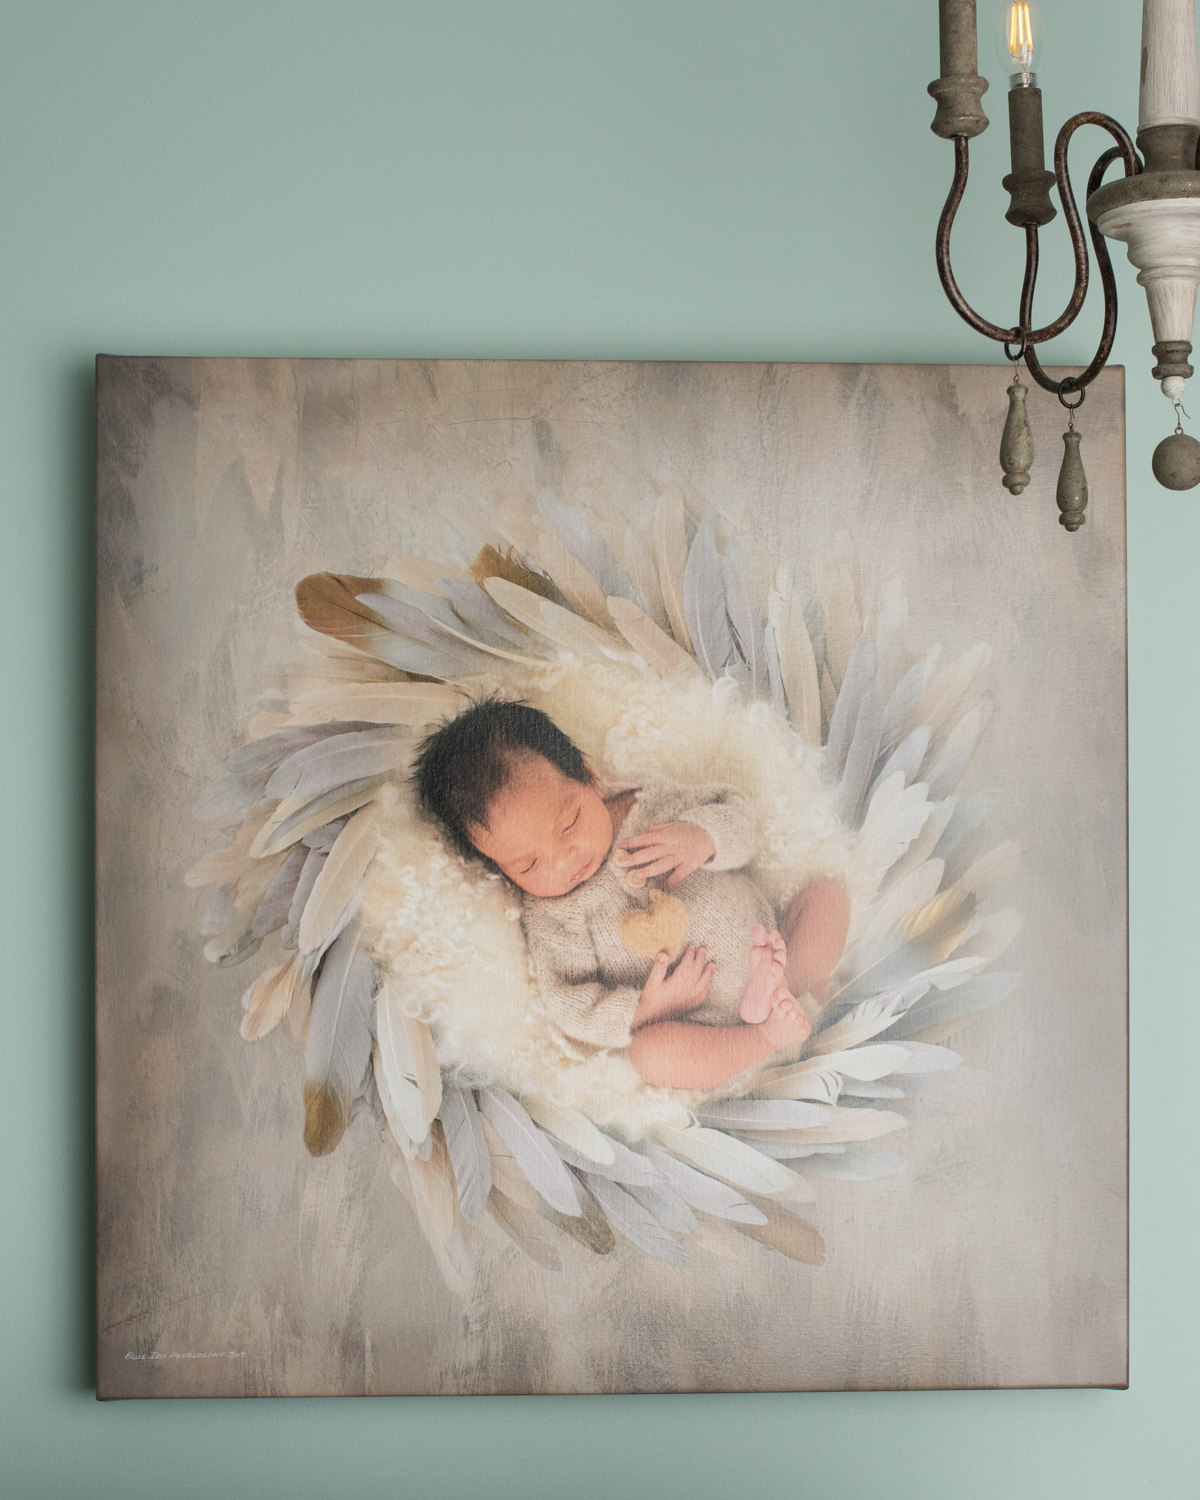 A 24x24 true museum quality wraparound canvas. Handmade with old world craftsmanship. Preserve your legacy with a top quality canvas that can be cherished for many generations to come!